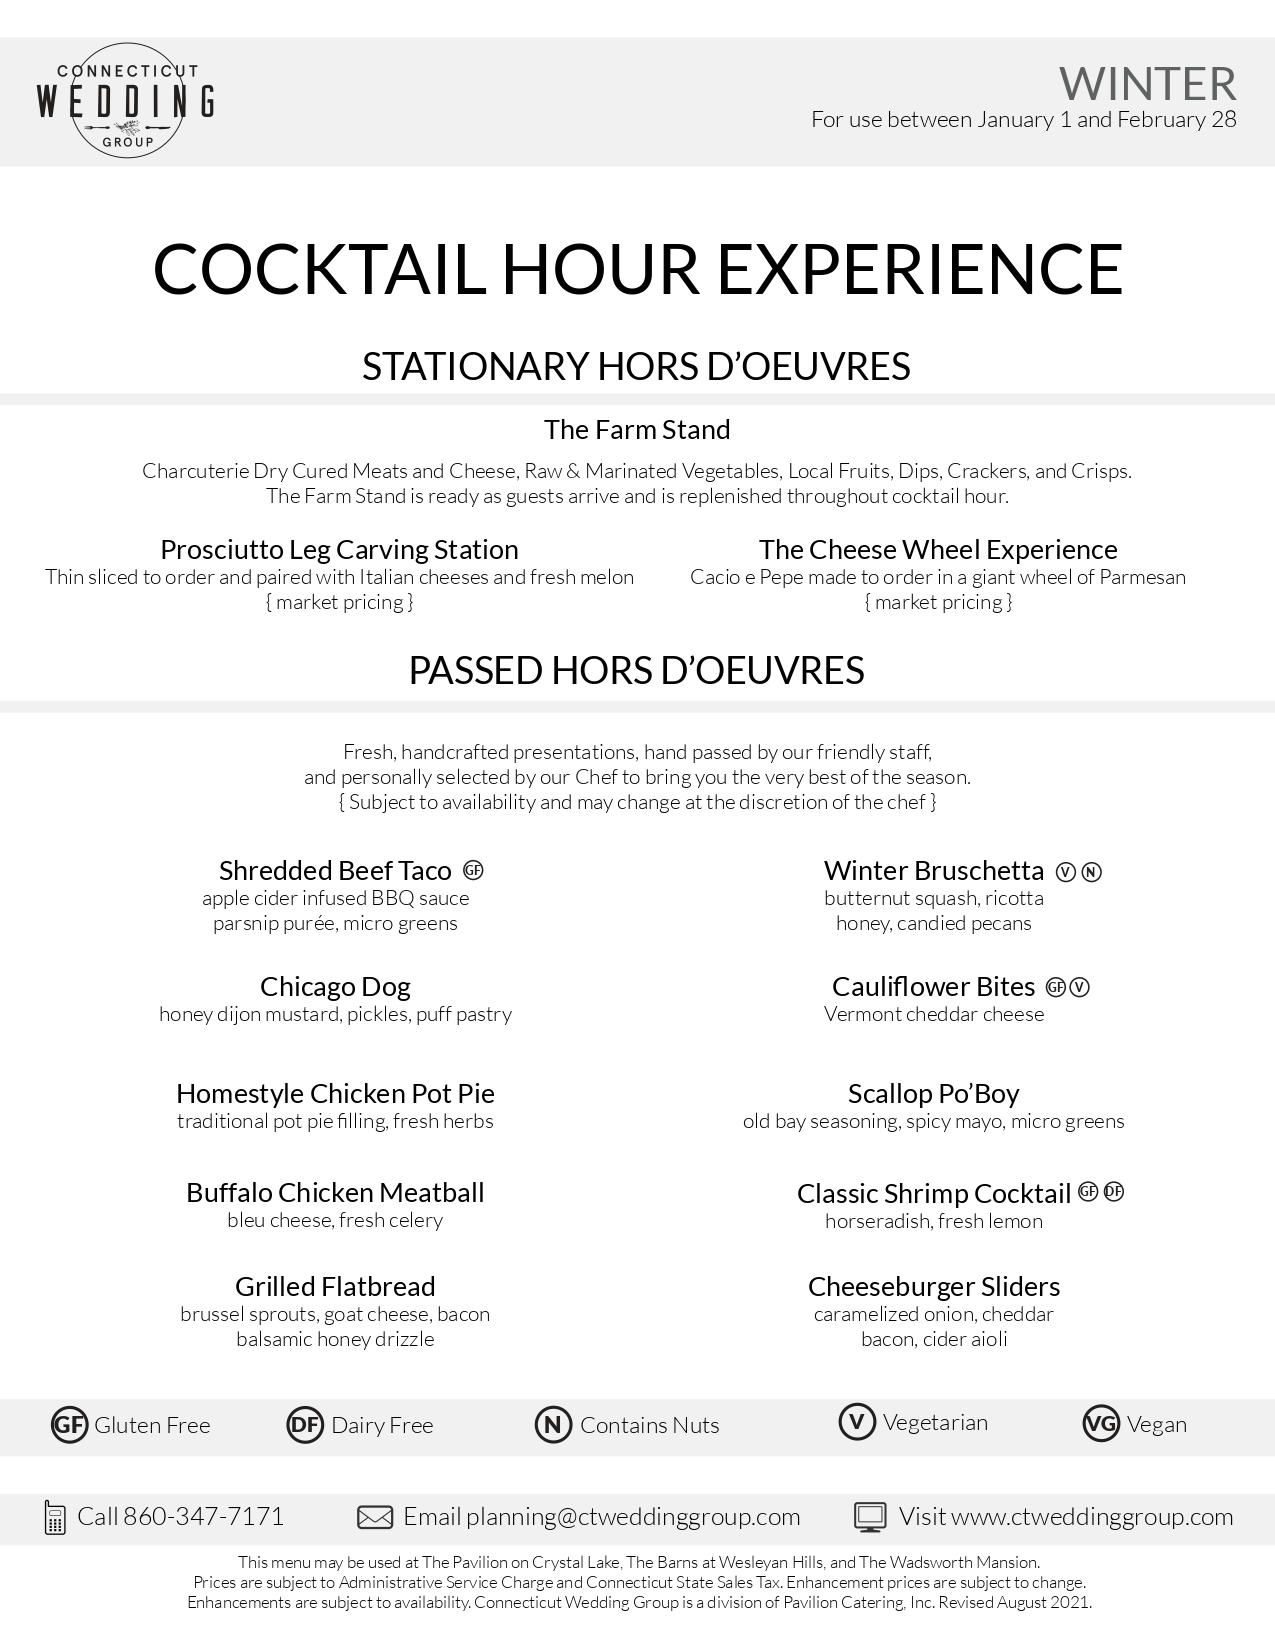 Winter-Cocktail-Hour-Culinary-Experiences-2022_page-0001